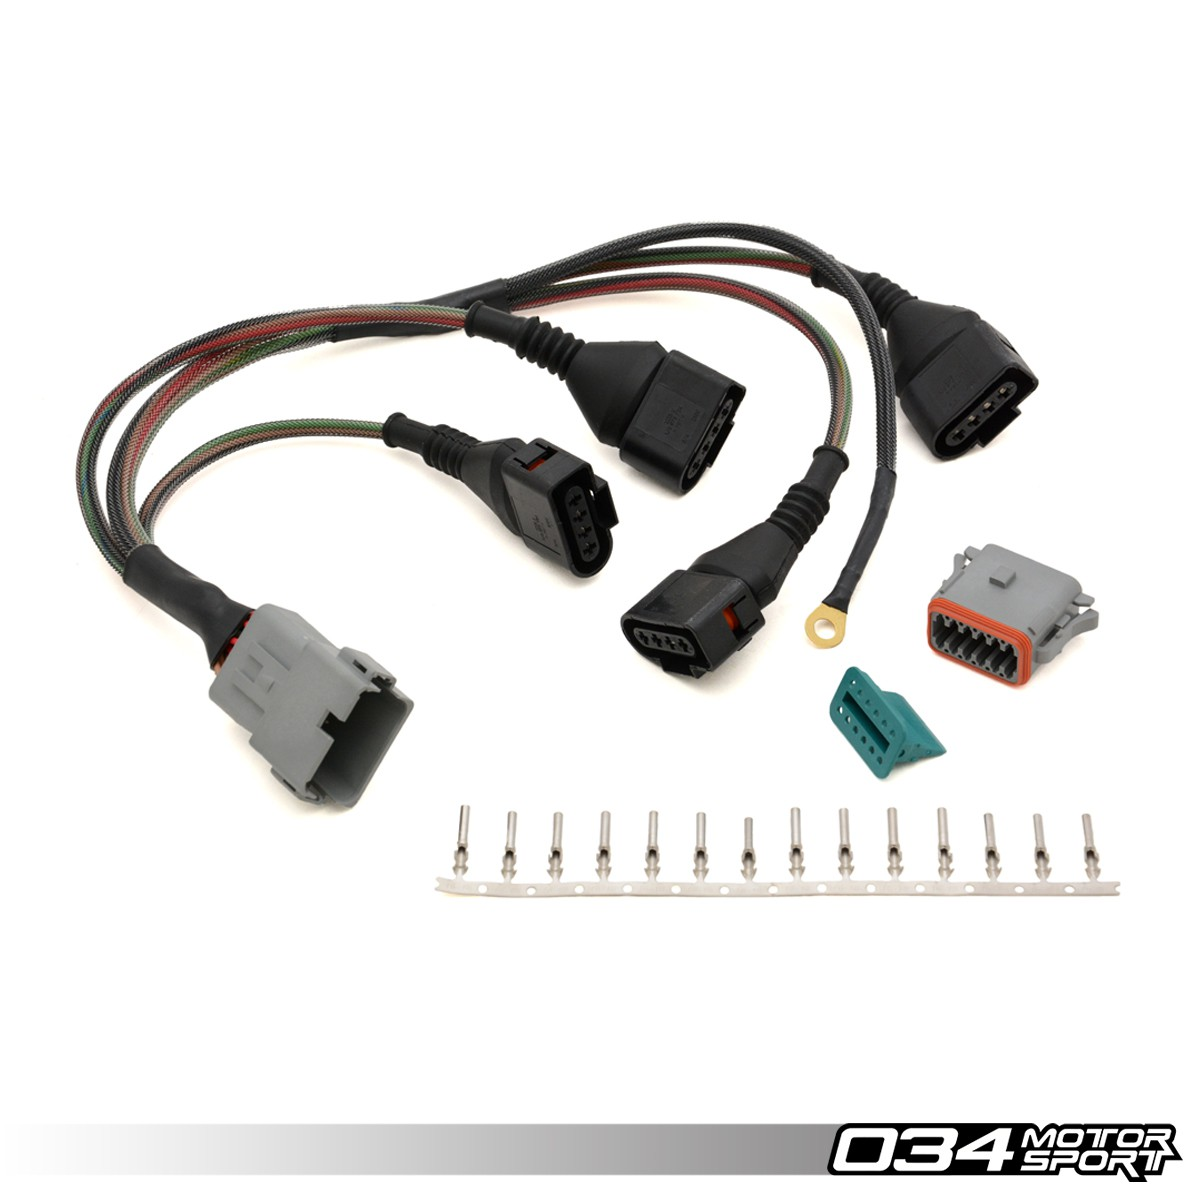 repair update harness audi volkswagen 18t with 4 wire coils 034motorsport 034 701 0004 2 repair update harness, audi volkswagen 1 8t with 4 wire coils Wire Harness Maintance at n-0.co